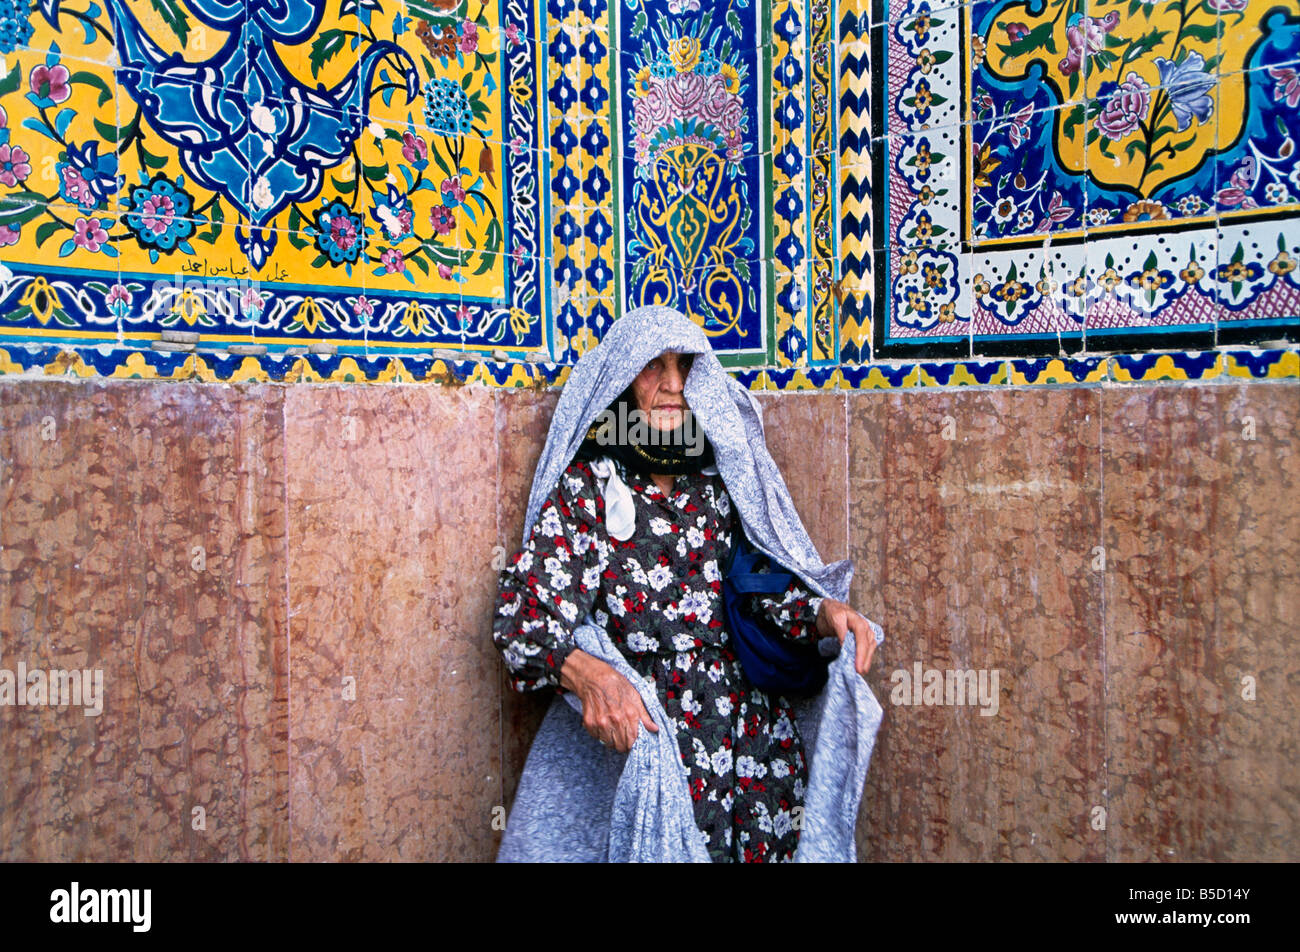 Najaf Iraq Holy Shrine Of Imam Ali Ibn Abi Talib Shi'ite Place Of  Pilgrimage Where Ali's Tomb Is Venerated Shi'ite - Stock Image